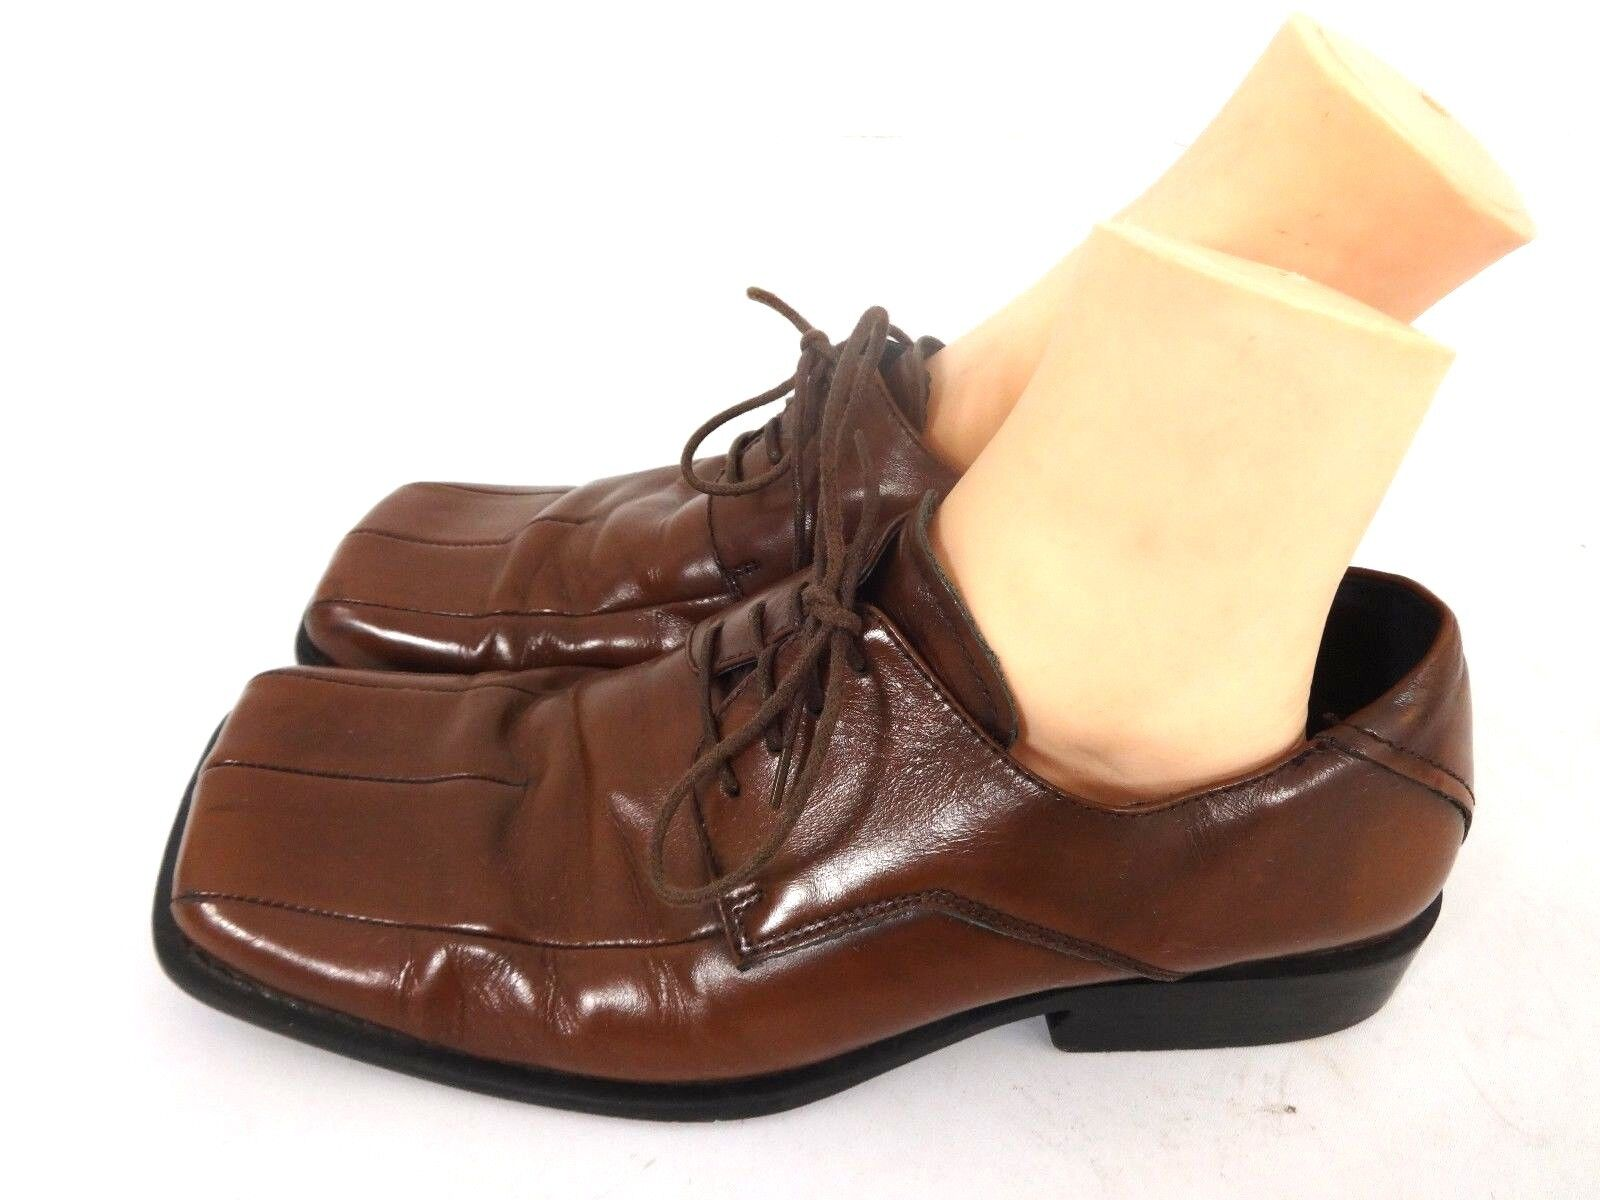 7c1170ce86b STEVE MADDEN MENS BROWN LEATHER LACE UP OXFORDS SHOES SIZE 10 M US ...